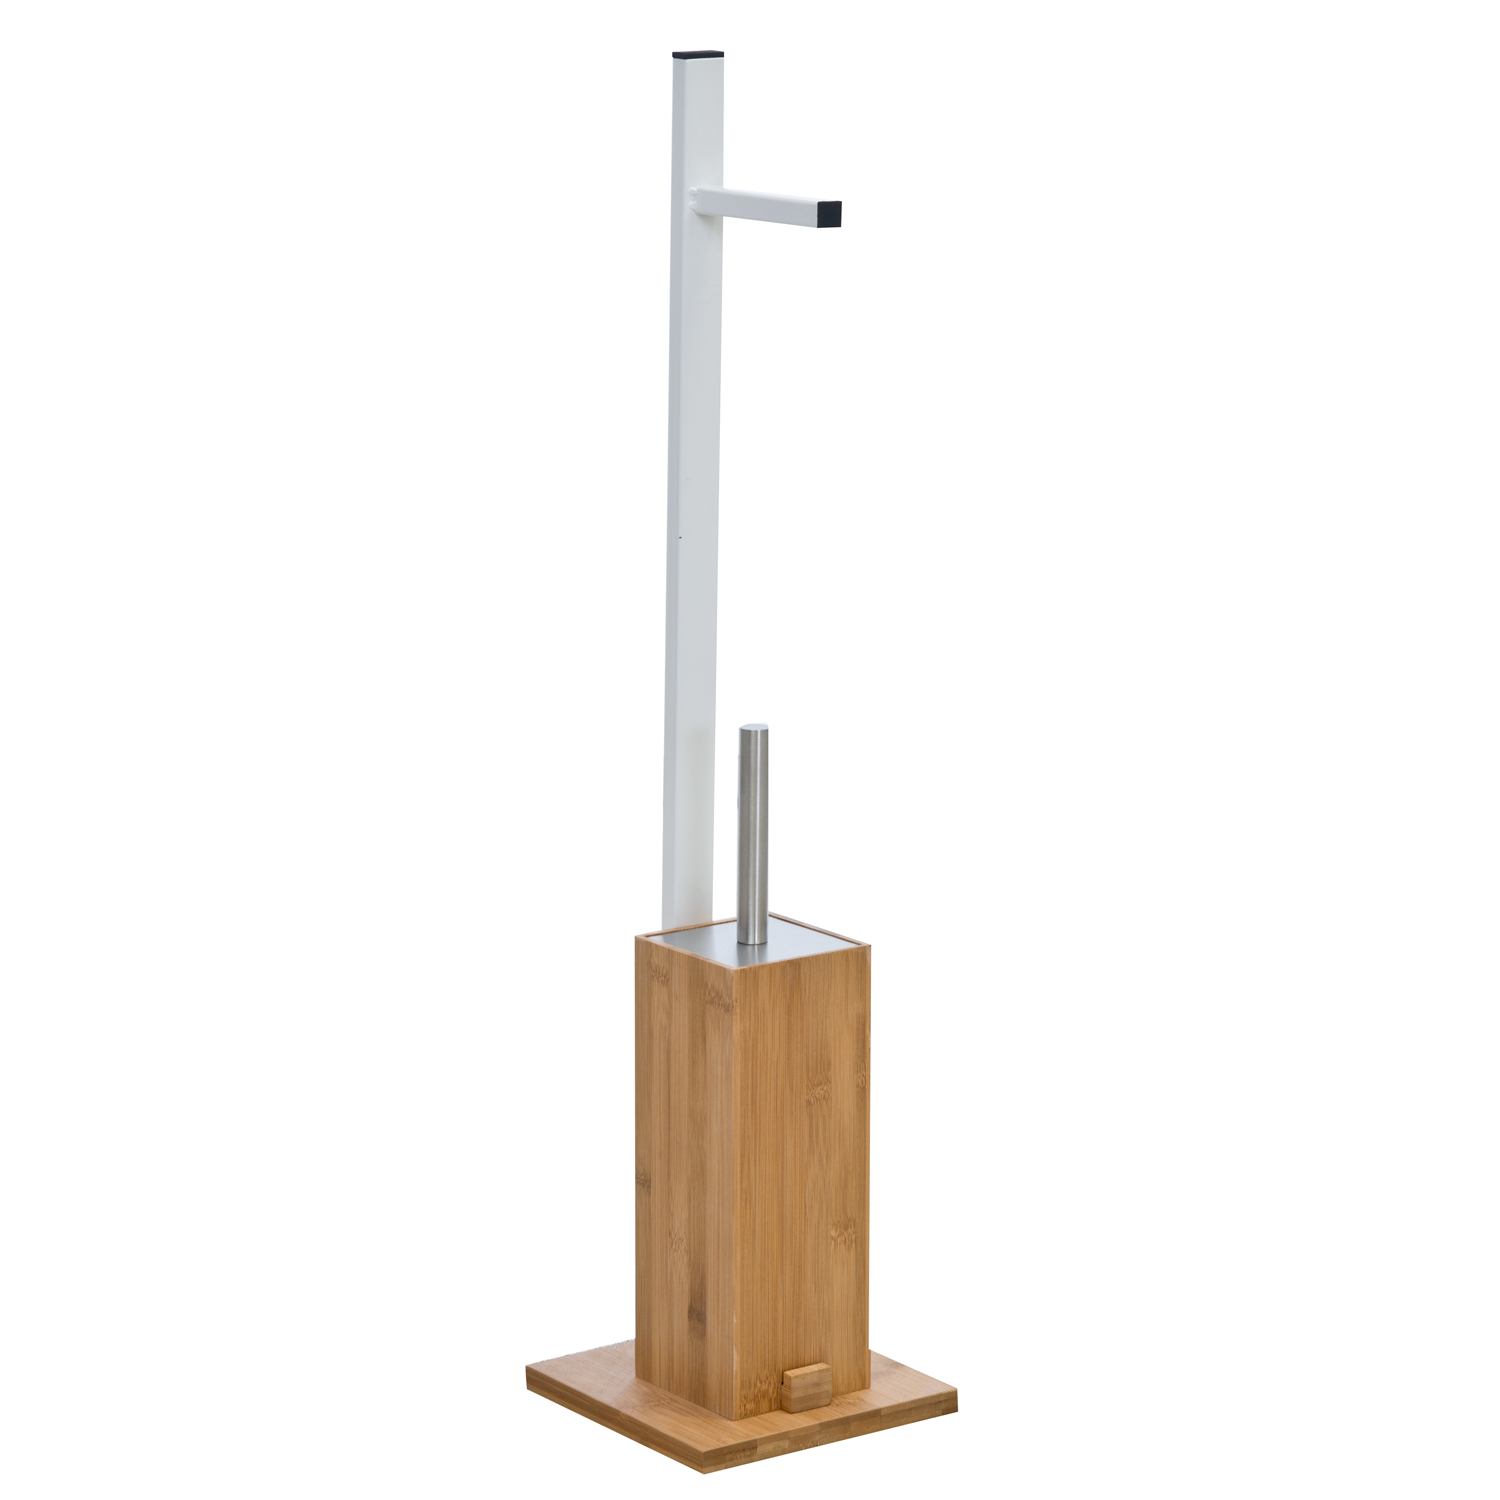 Image of Casa Bamboo Toilet Roll & Toilet Brush Stand